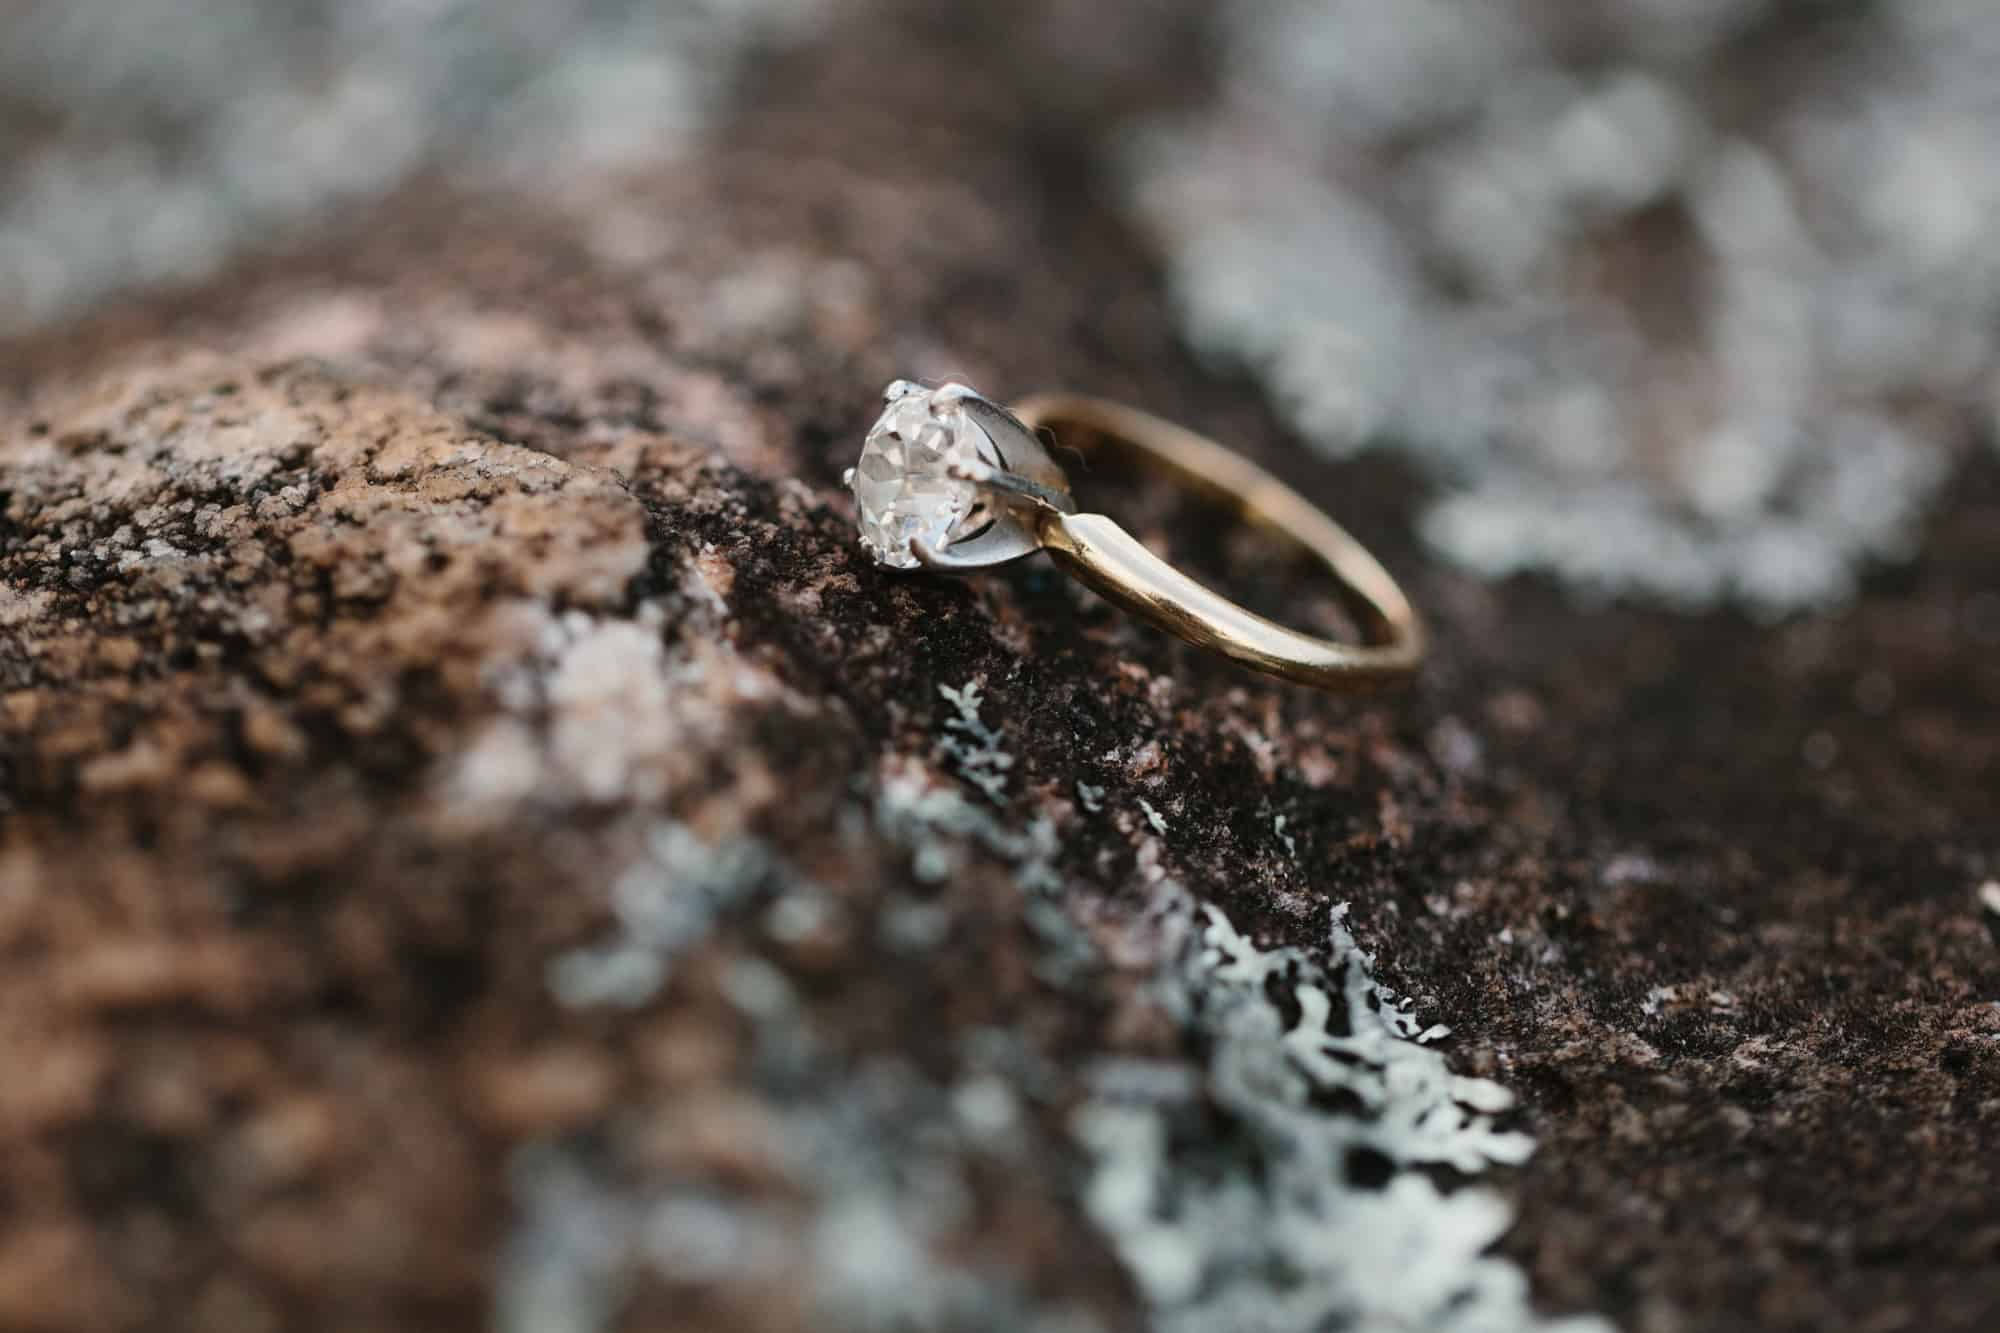 Engagement ring detail at Arabia Mountain by Kate Lamb of Wild in Love Photo